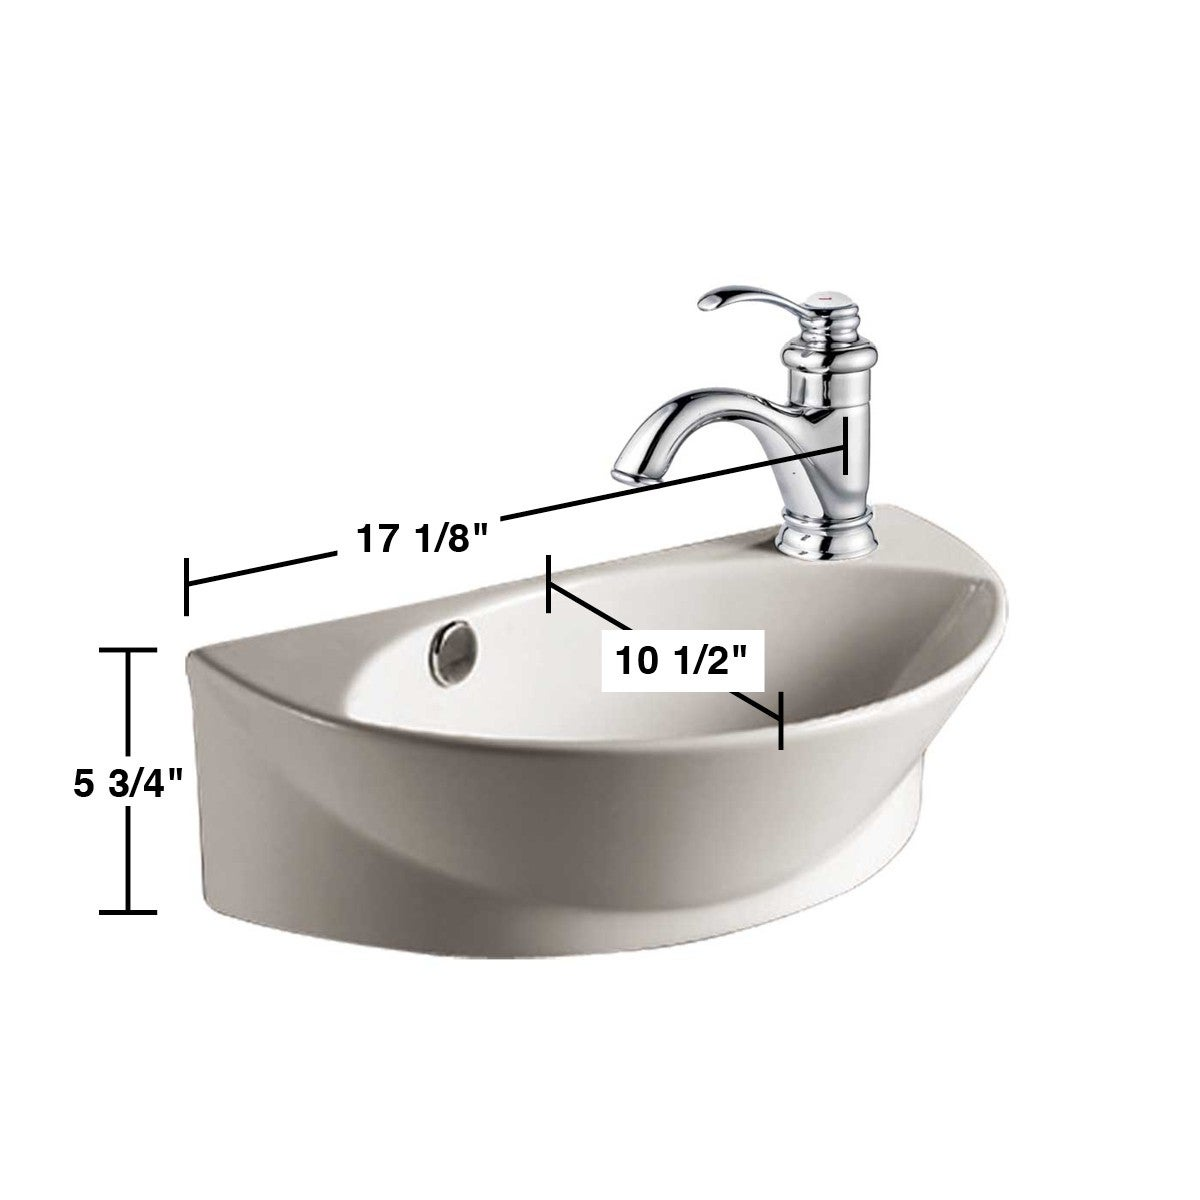 Small Wall Mount Bathroom Sink White With Single Faucet Hole Free Shipping Today 12636451